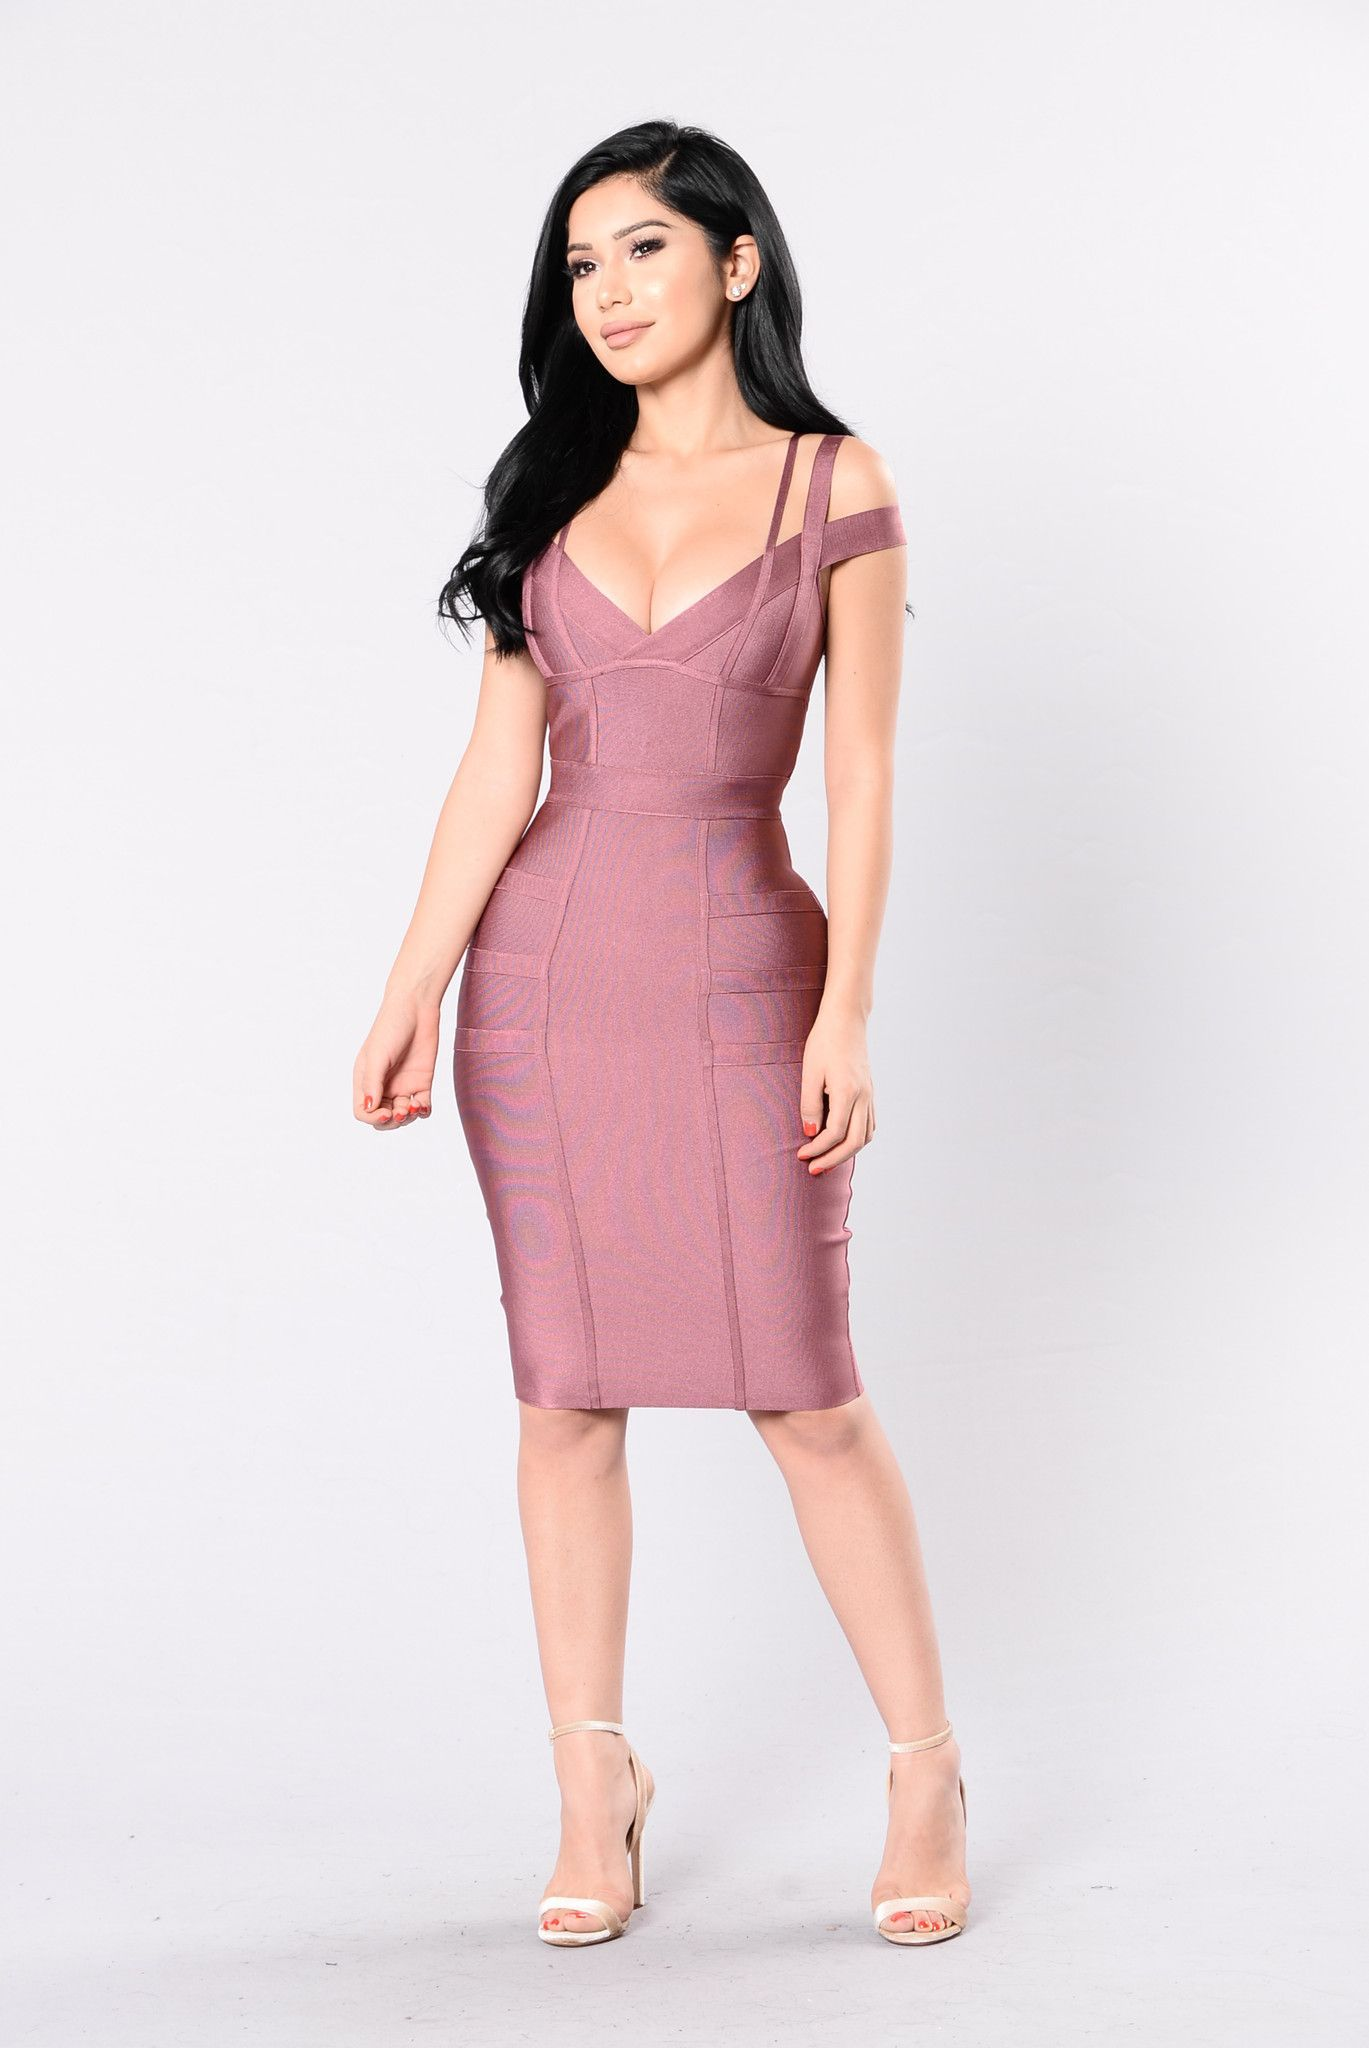 Lansa Bandage Dress - Dark Mauve | Ropa y Vestiditos